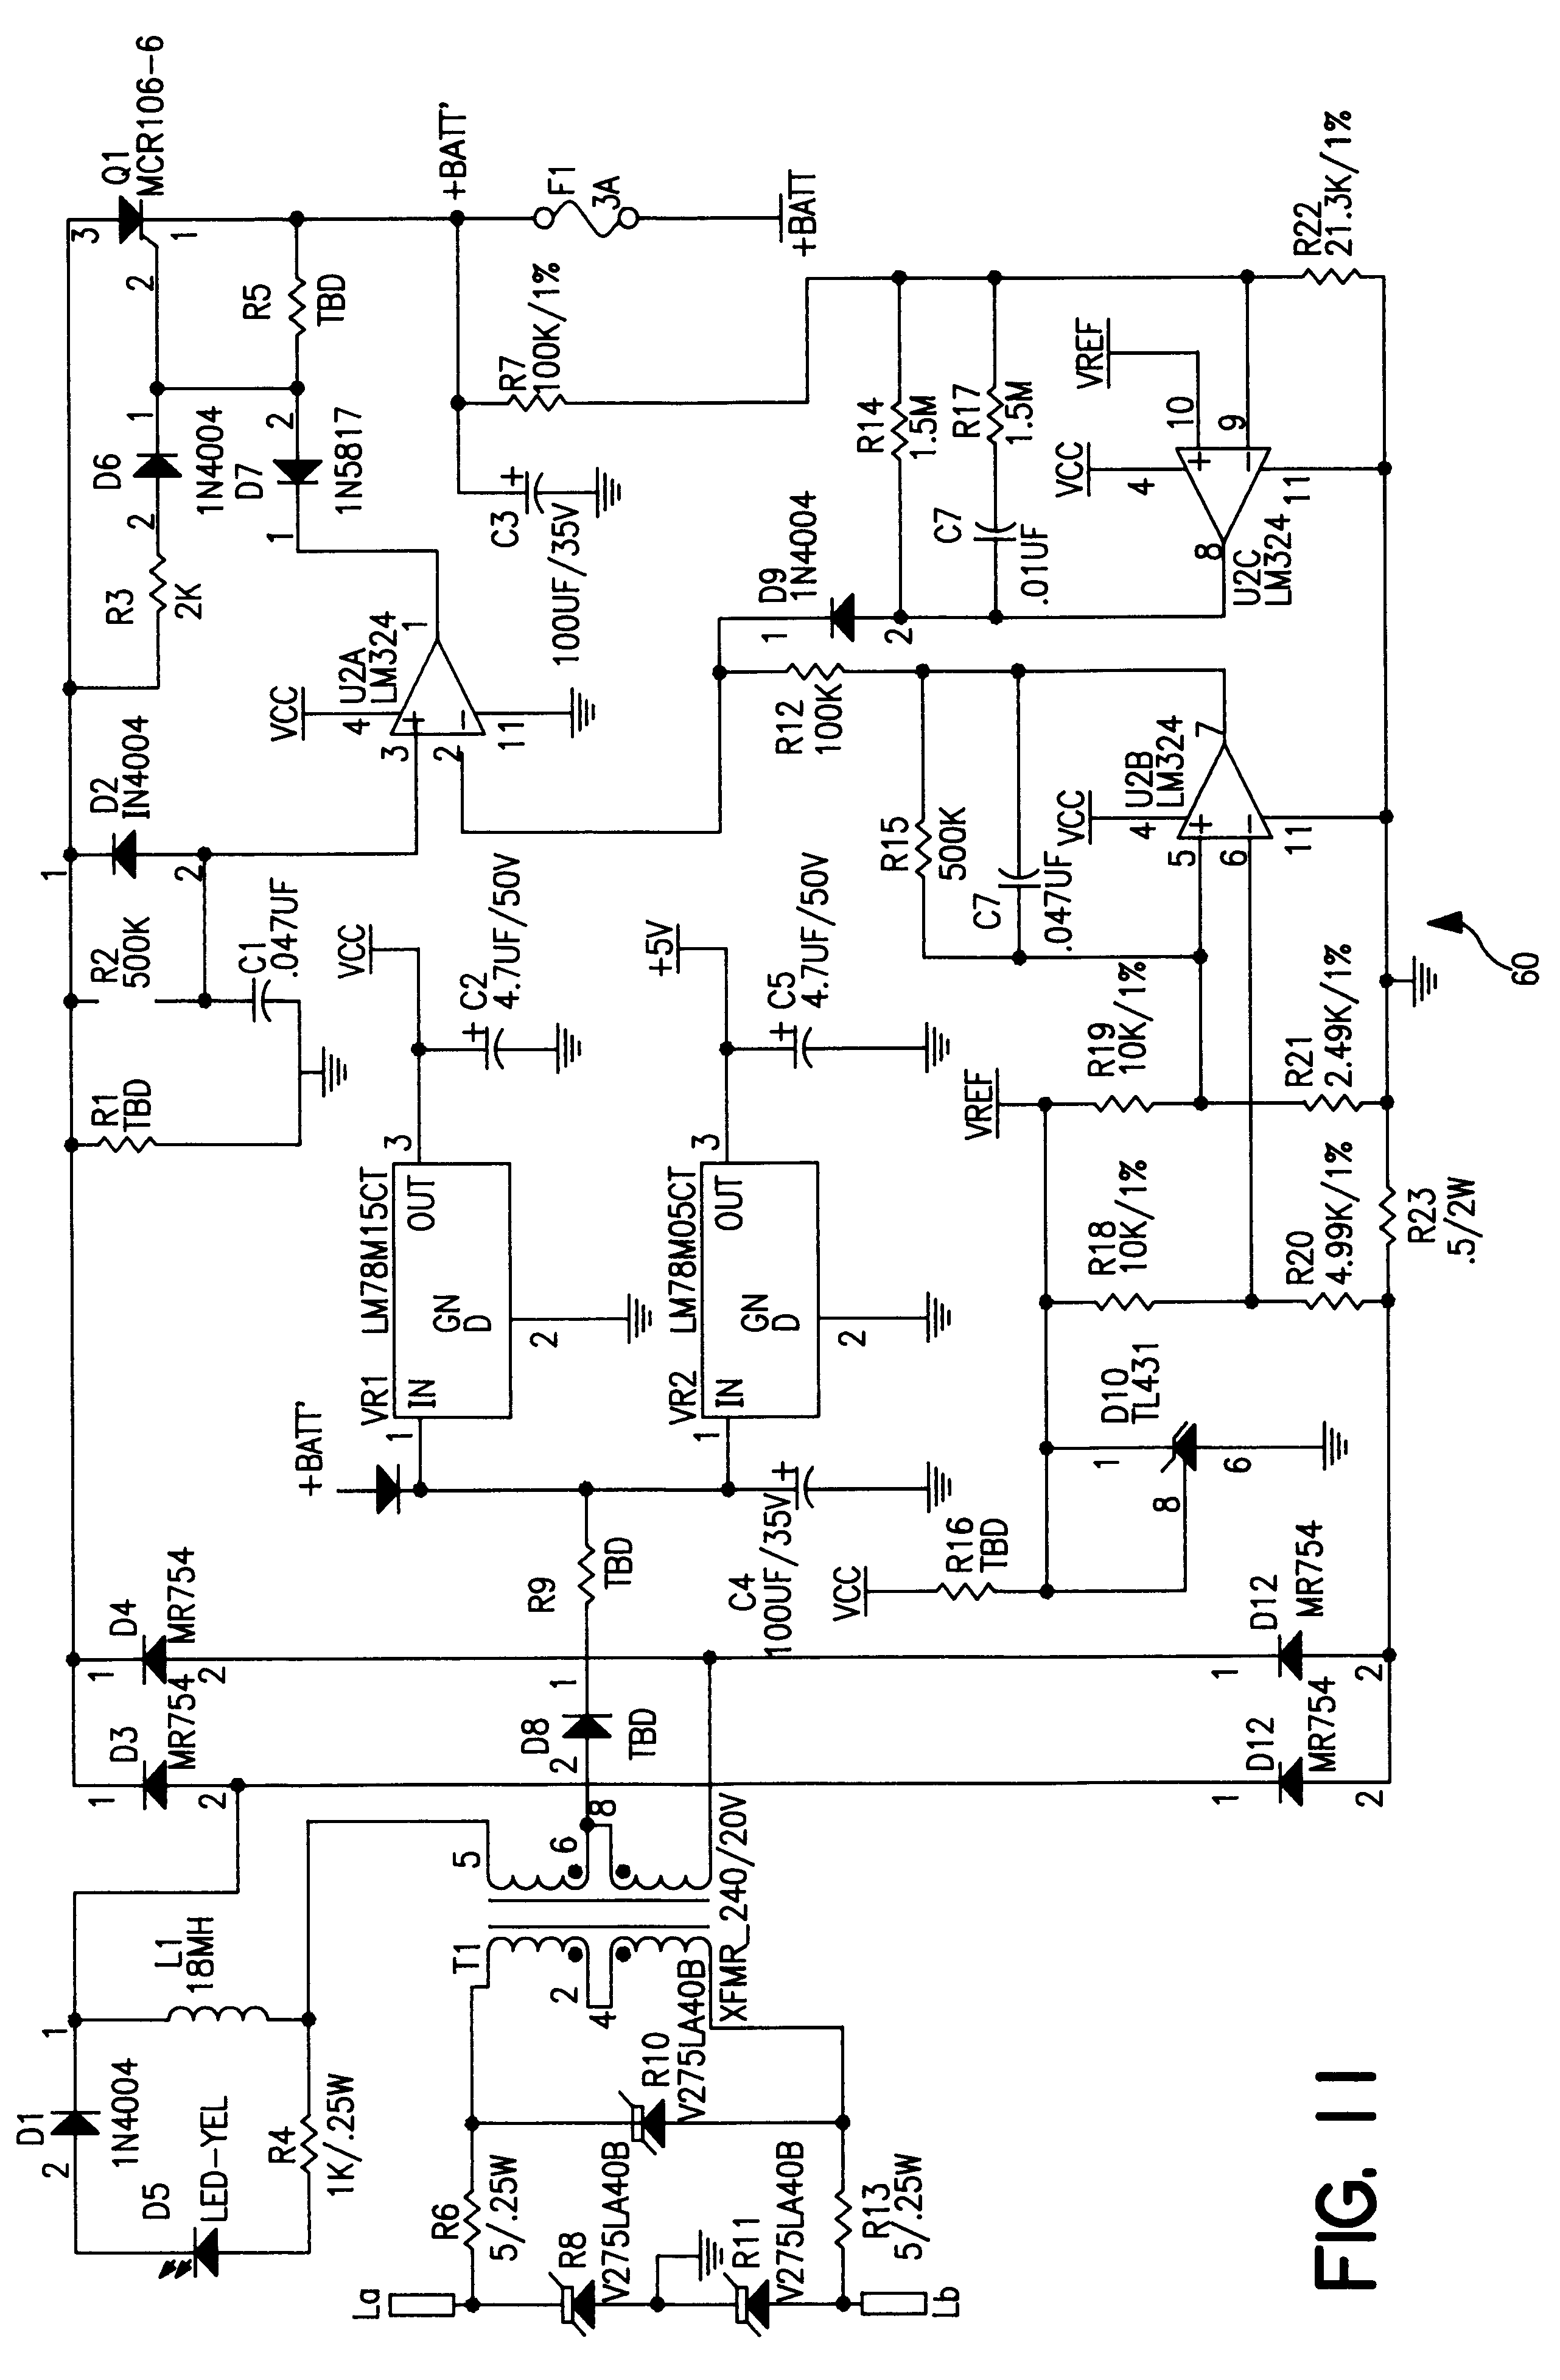 Automatic Transfer Switch Wiring Diagram